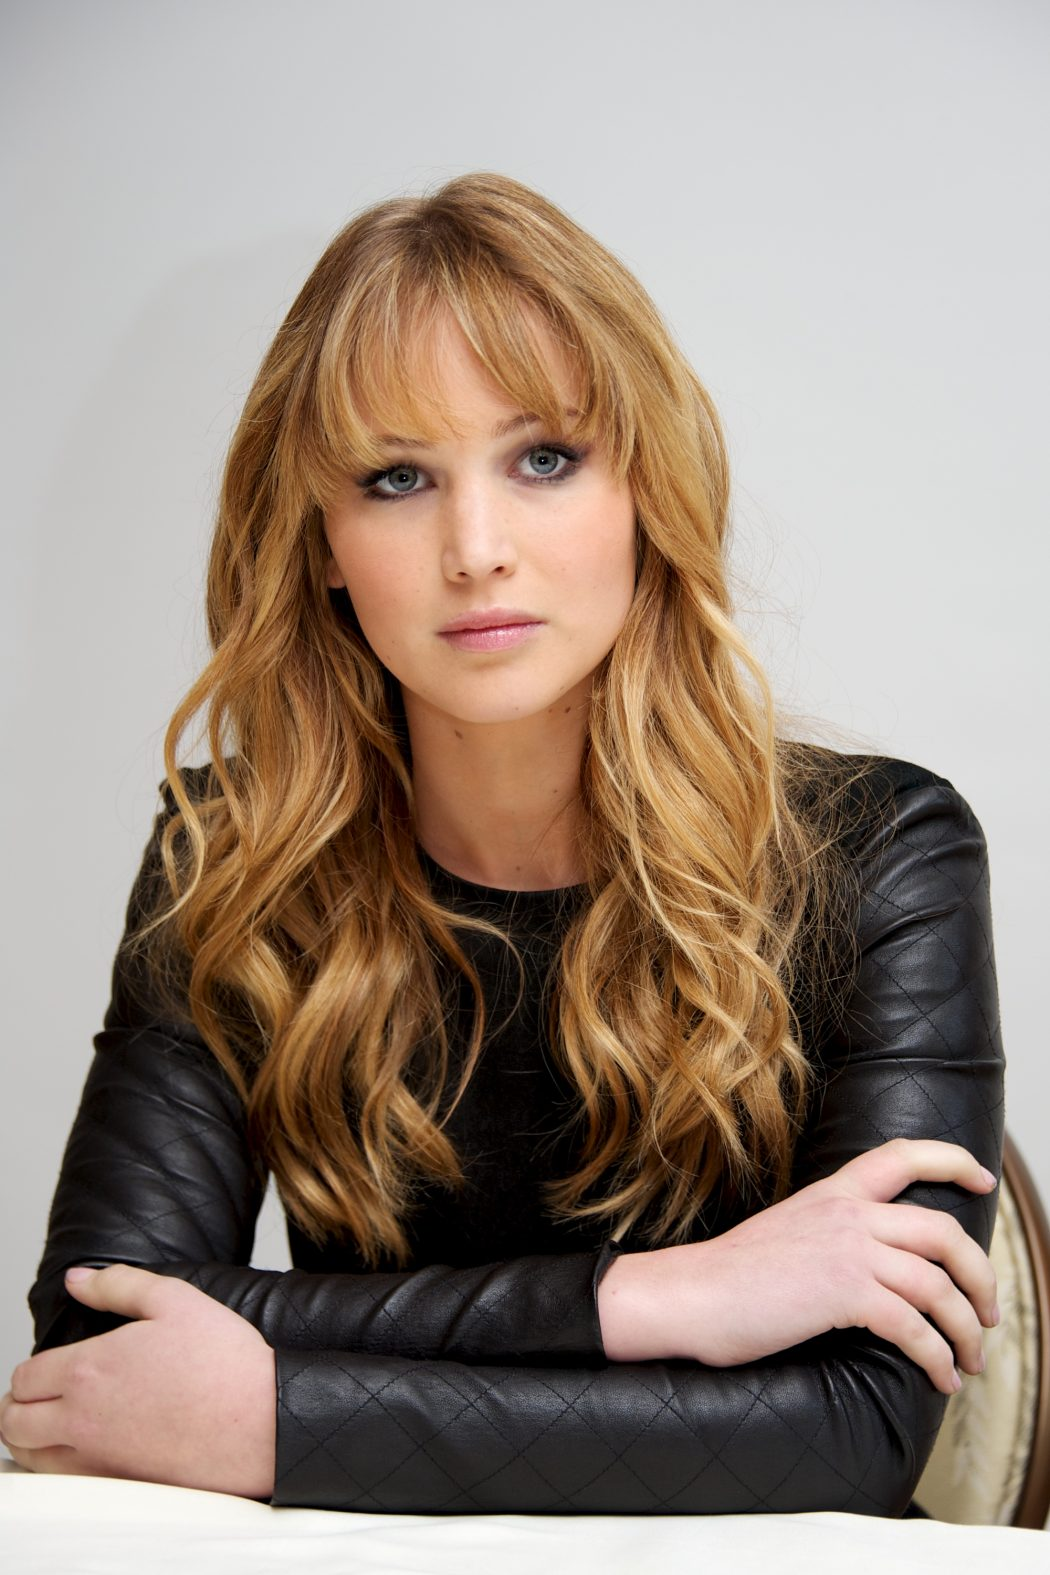 lookpurdy-jennifer-lawrence-in-the-row-the-hunger-games-beverly-hills-photocall The Most Famous Celebrities Clothing Brands